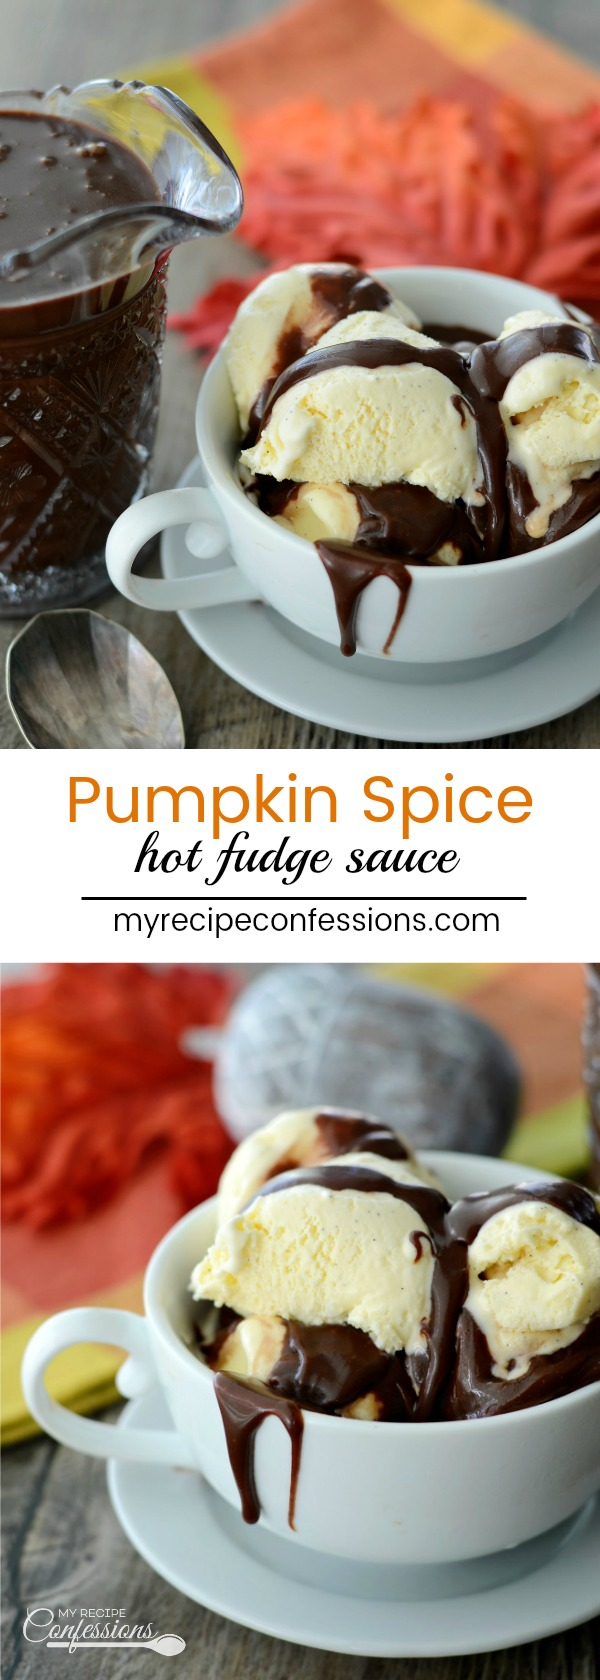 Pumpkin Spice Hot Fudge sauce is an easy recipe that takes less than 10 minutes to make. The pumpkin spice is the perfect complement to this rich homemade hot fudge sauce. Pour this Pumpkin Spice Hot Fudge over your ice cream for a mind-blowing dessert!